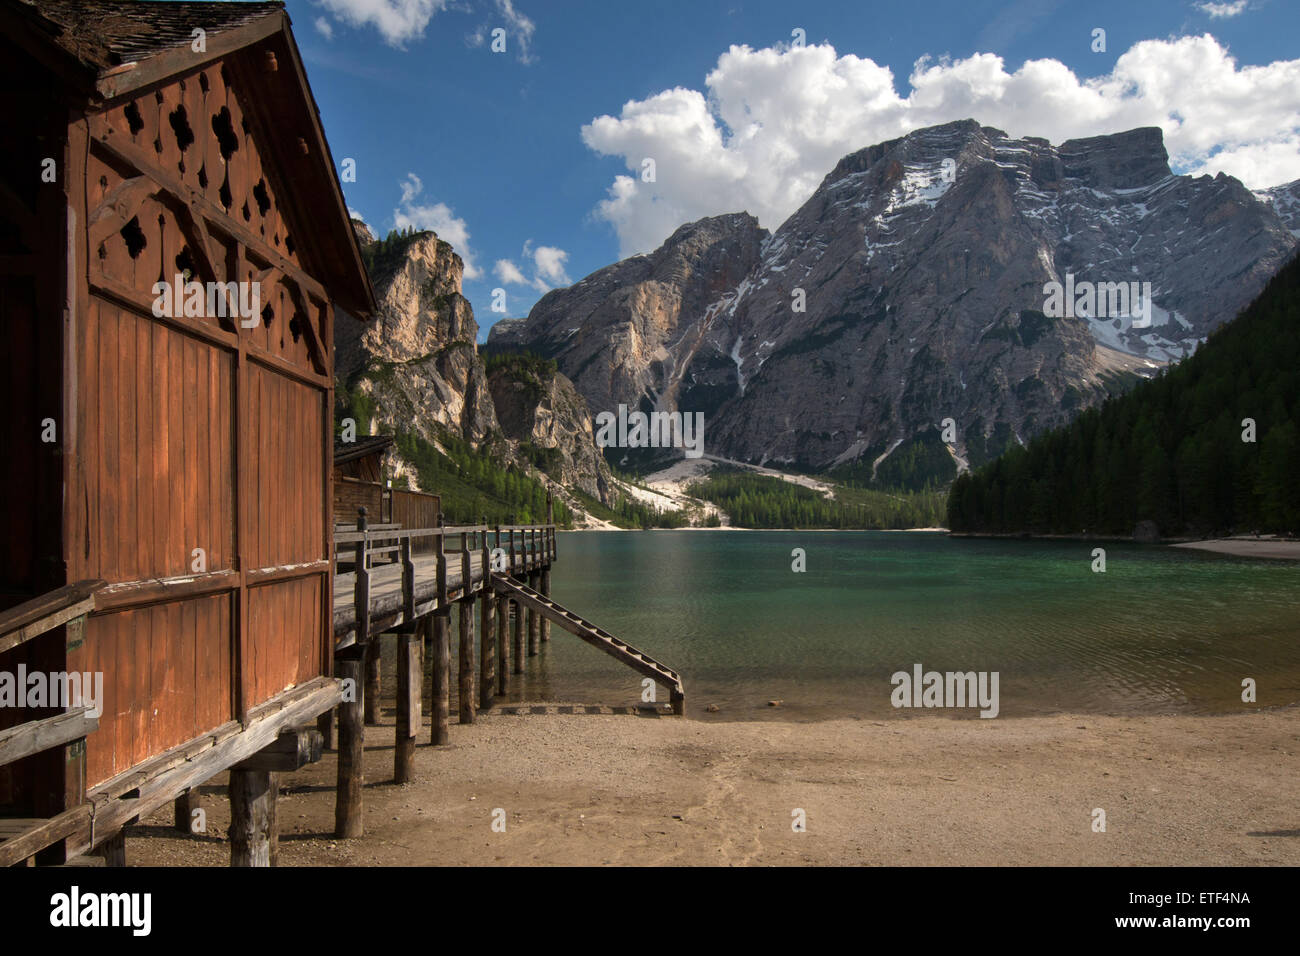 Pragser Wildsee, Lago di Braies, Puster Valley, South Tyrol, Italy Stock Photo